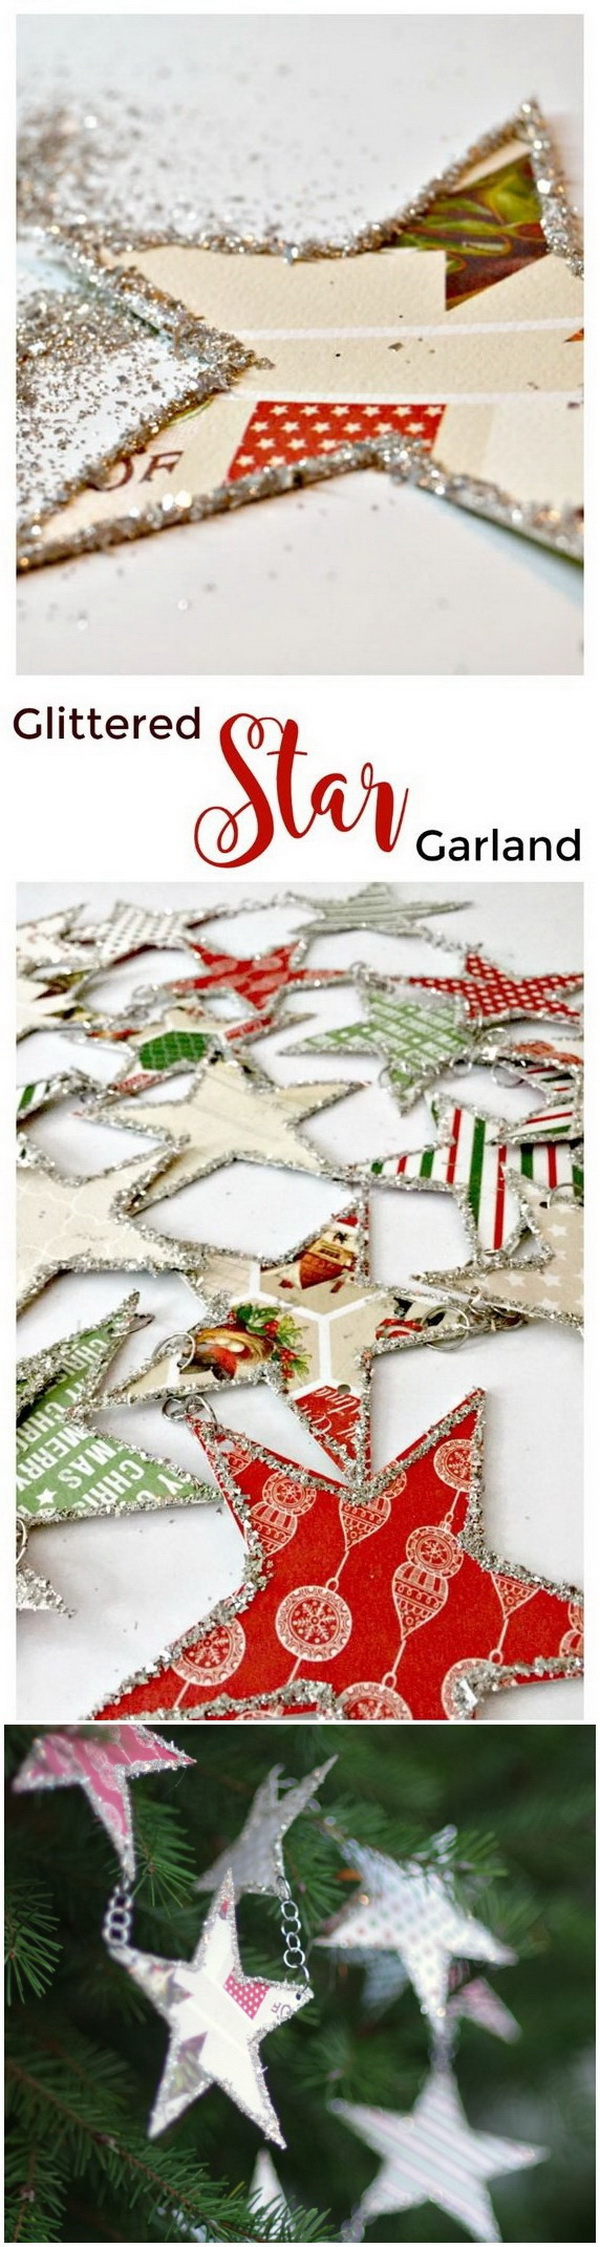 Glittery Star Christmas Garland. Add some sparkle to your holiday decor with this easy paper star garland   this Christmas season!